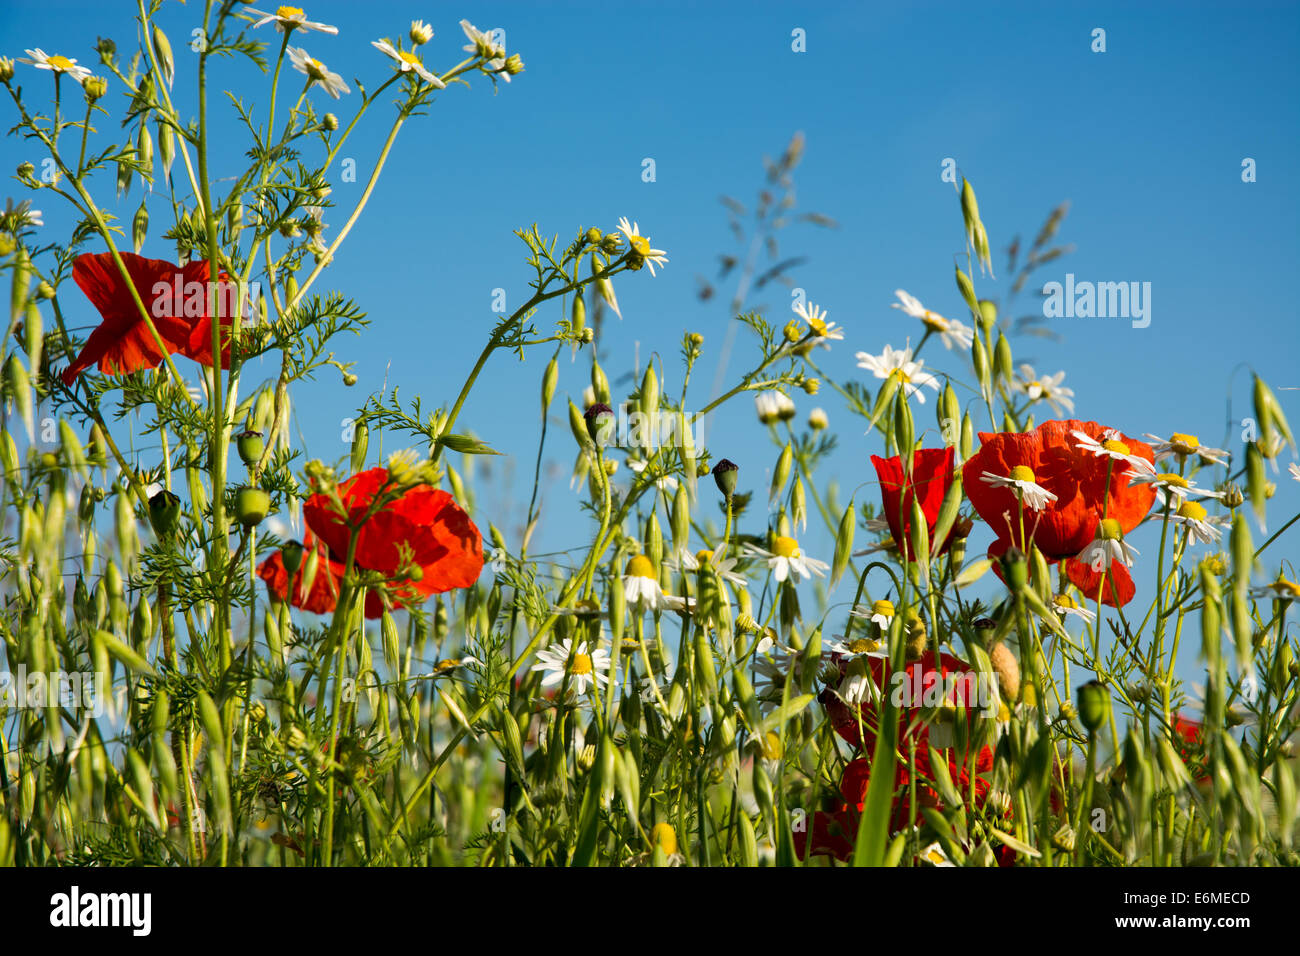 Wild flowers in a wheat field. - Stock Image